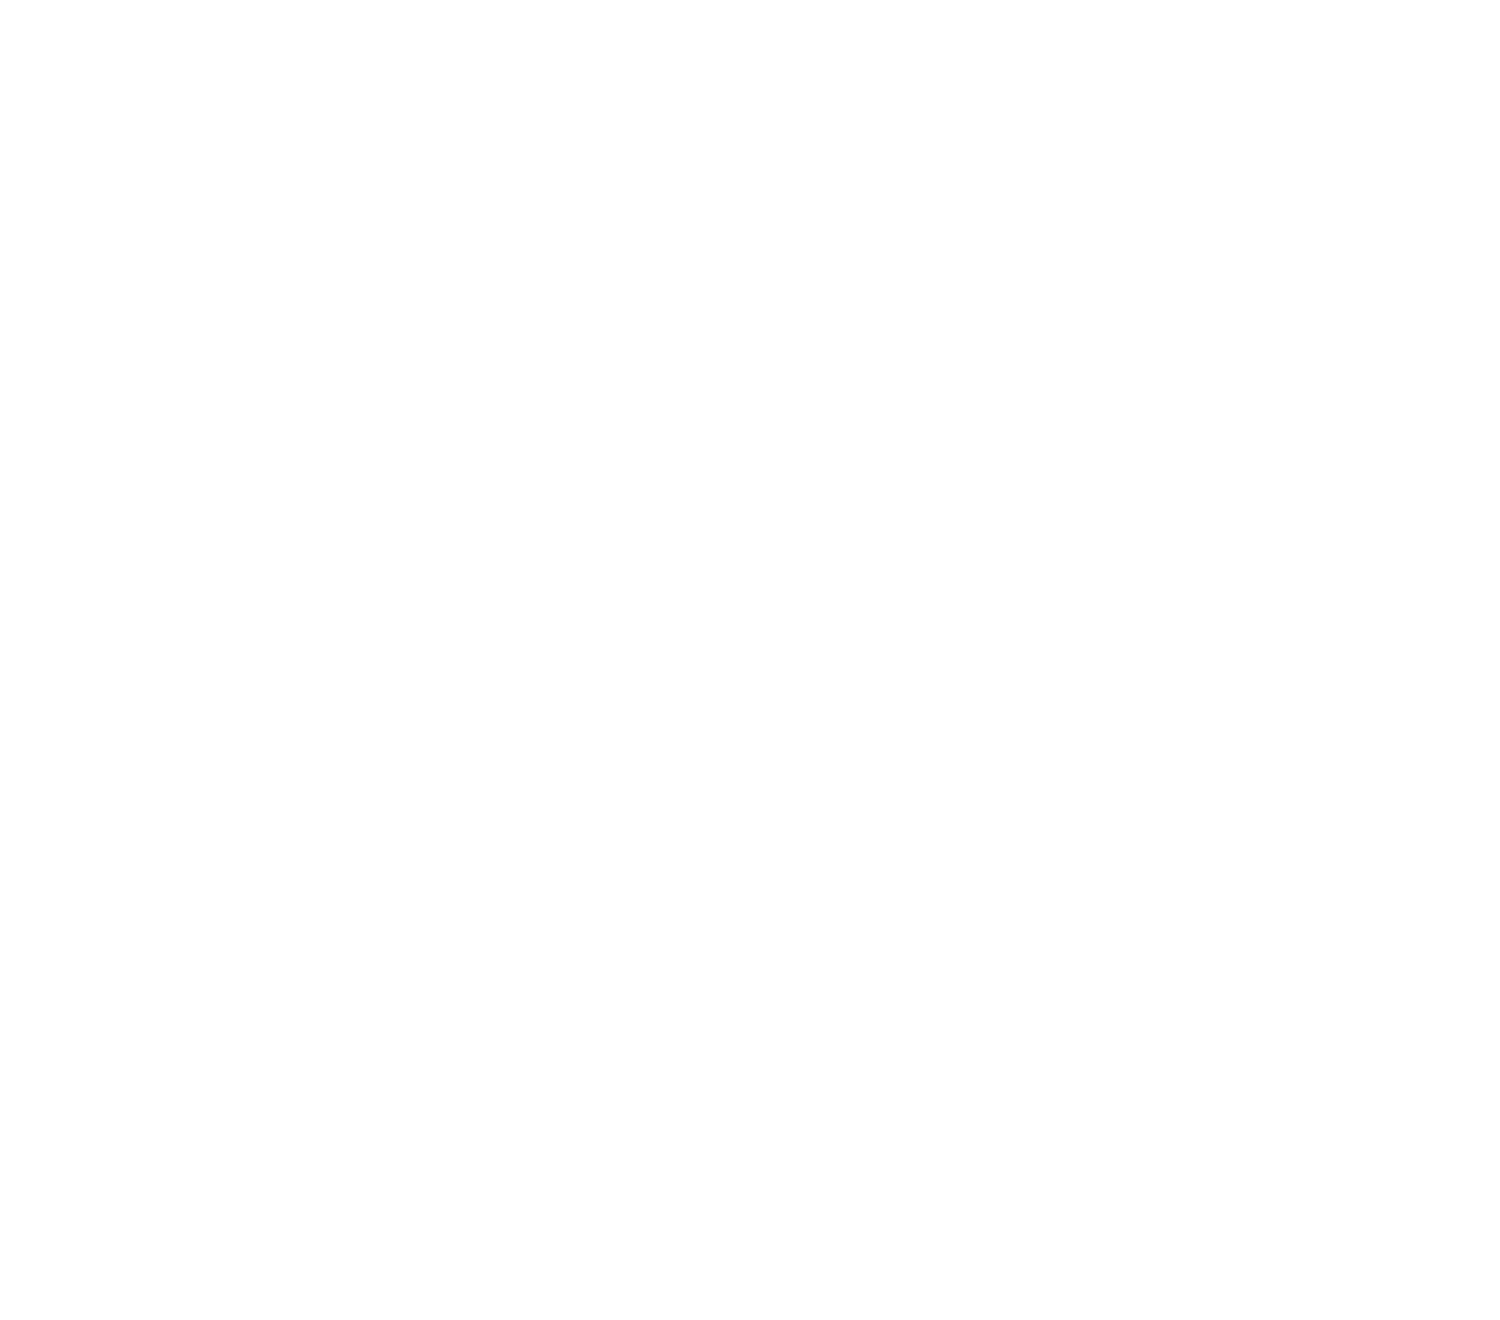 Starrlight Mead